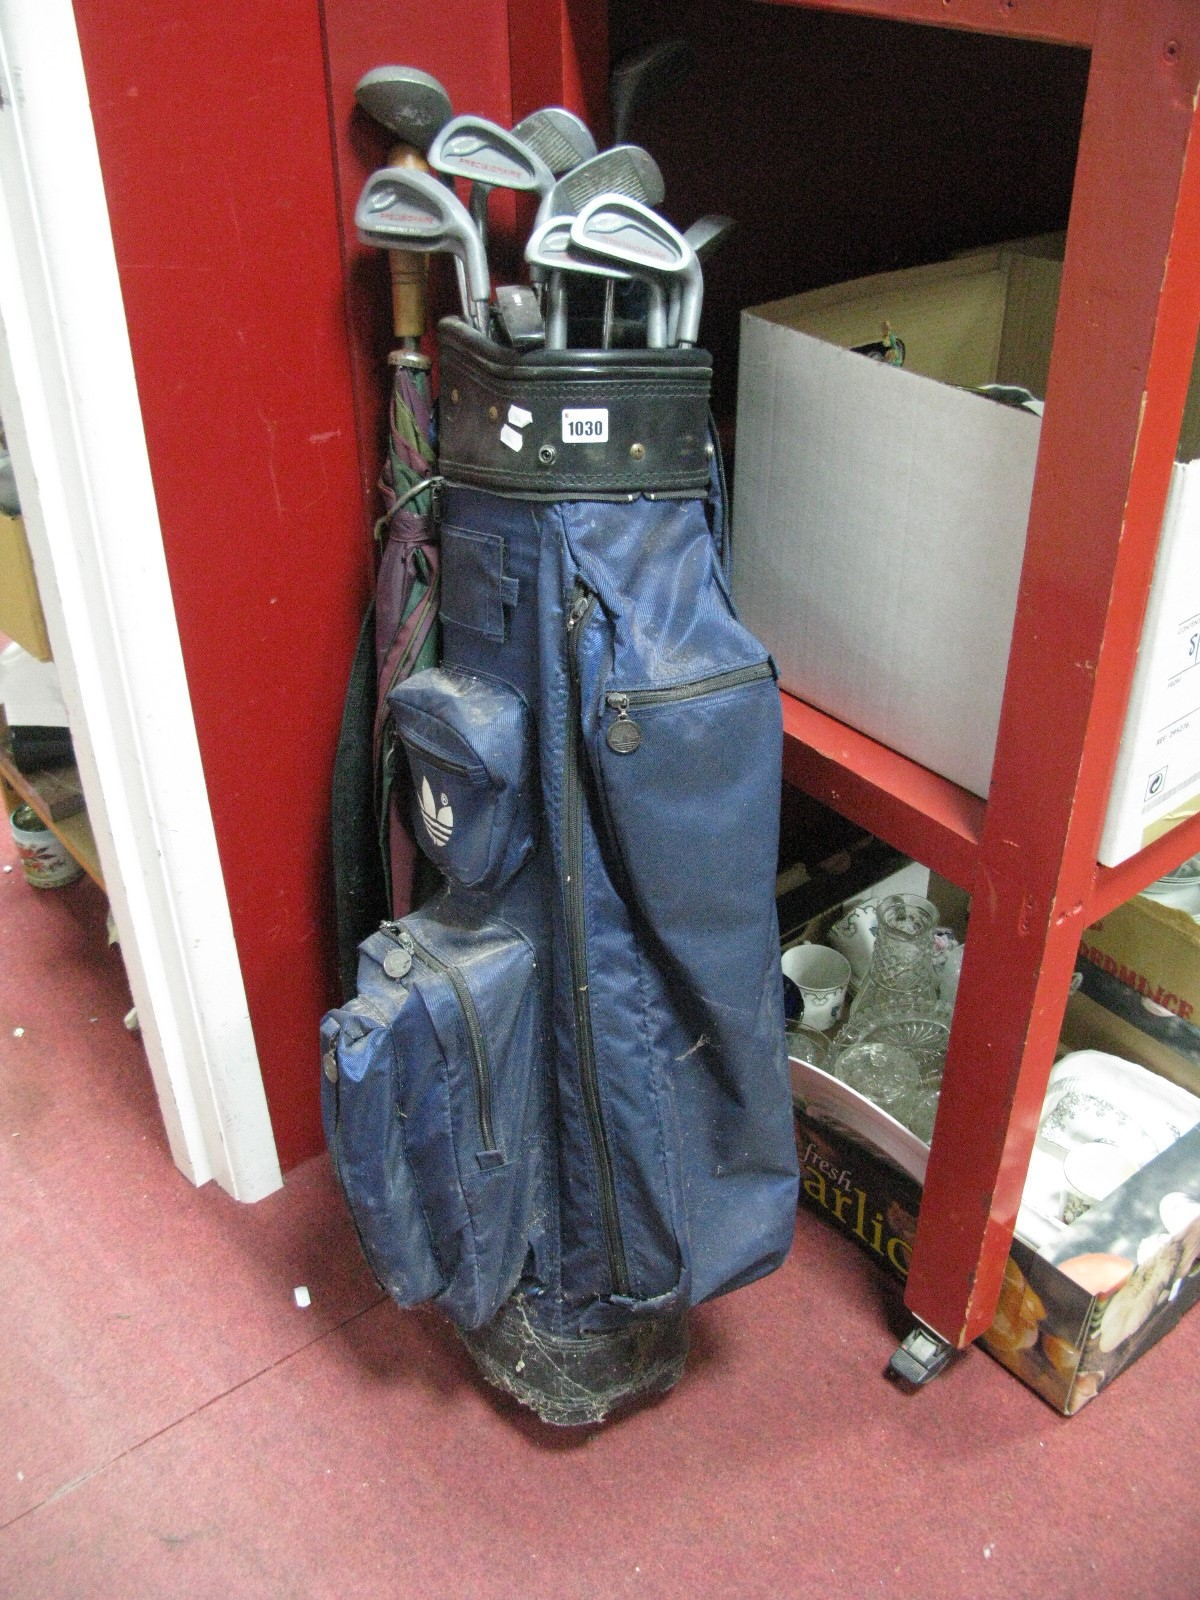 Lot 1030 - Precisionaire Golf Clubs in Bag.